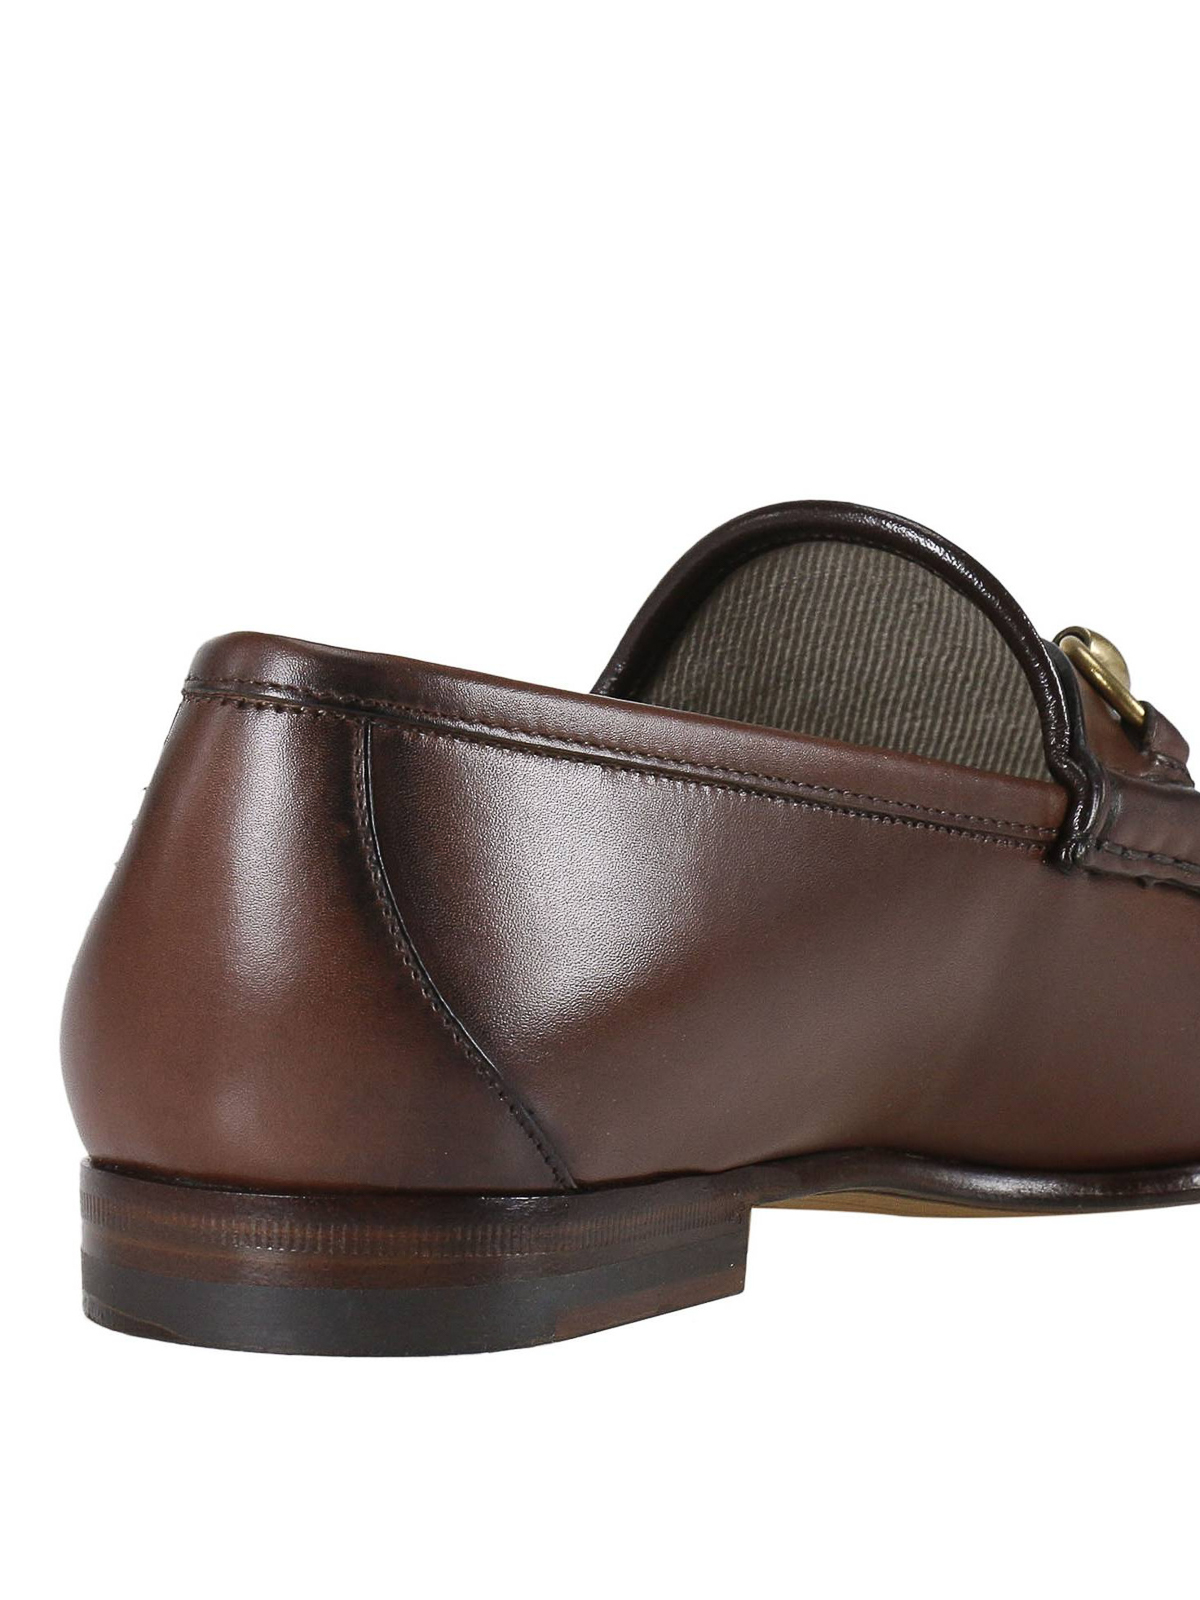 761bc68b1e1 Gucci - 1953 horsebit leather loafers - Loafers   Slippers ...